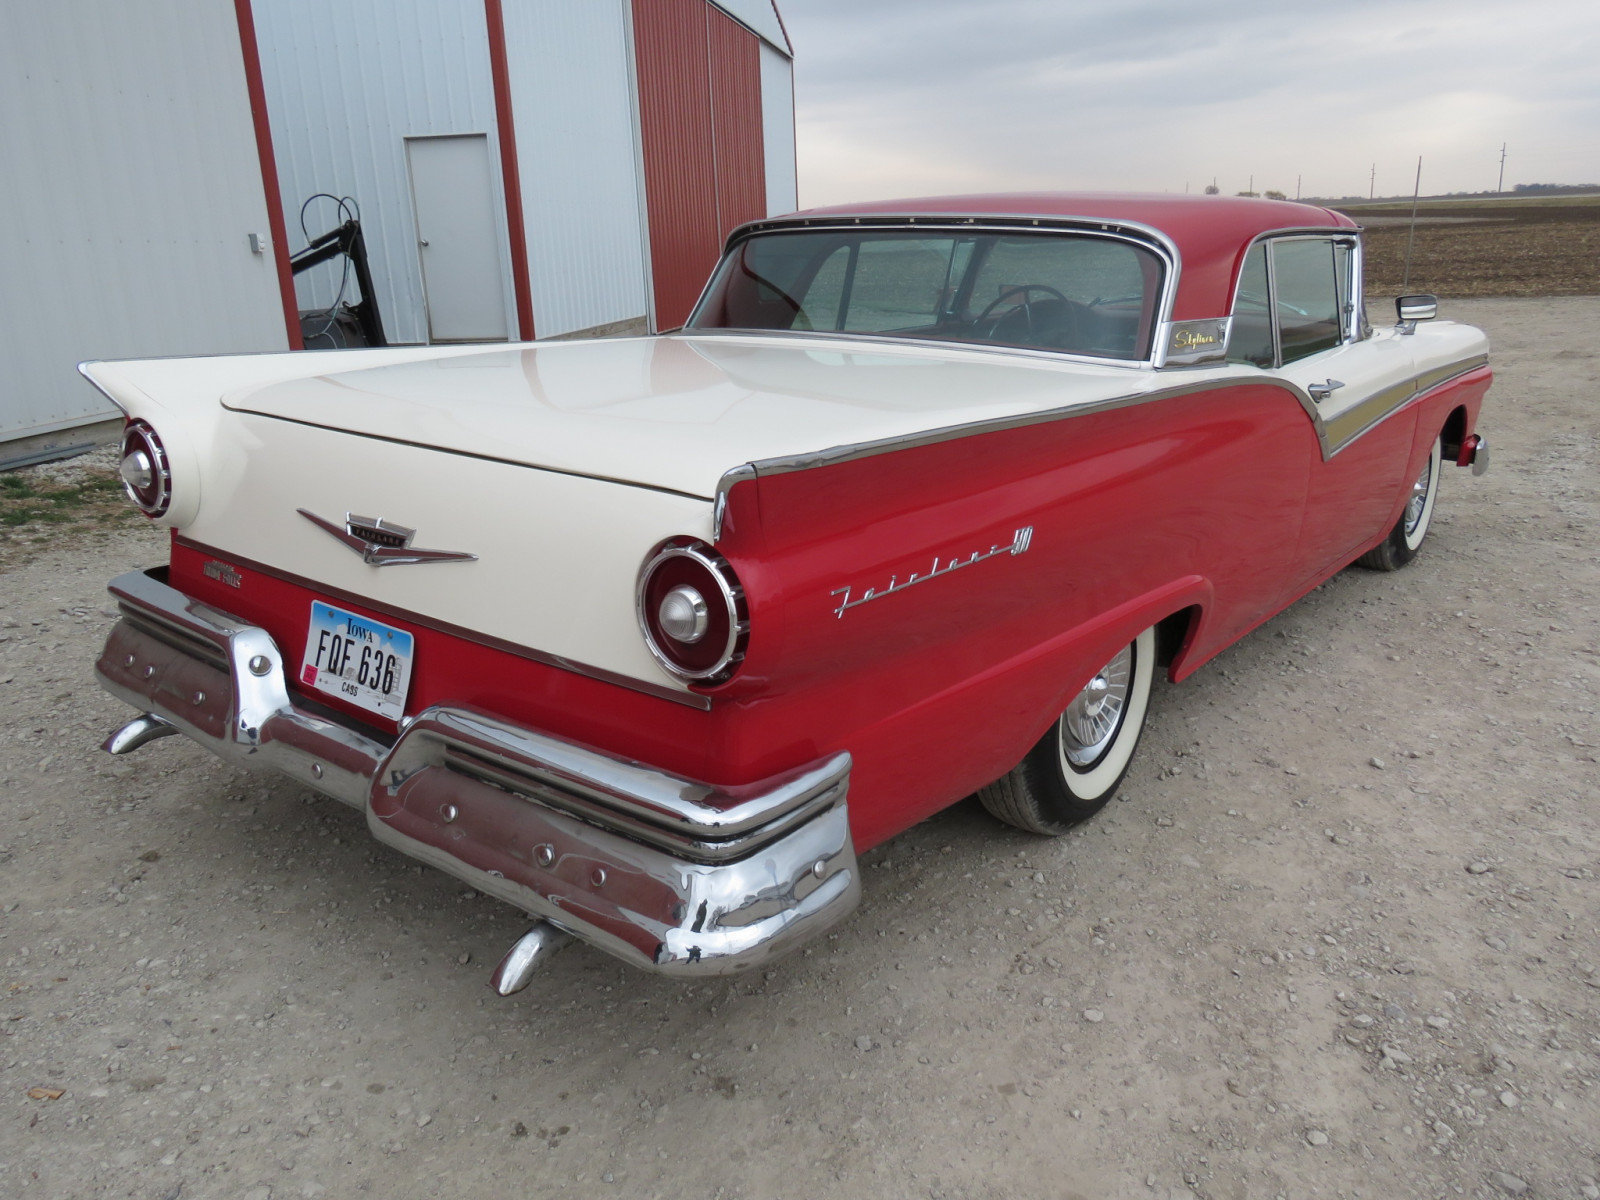 1957 Ford Fairlane 500 Skyliner Retractable hard Top - Image 7